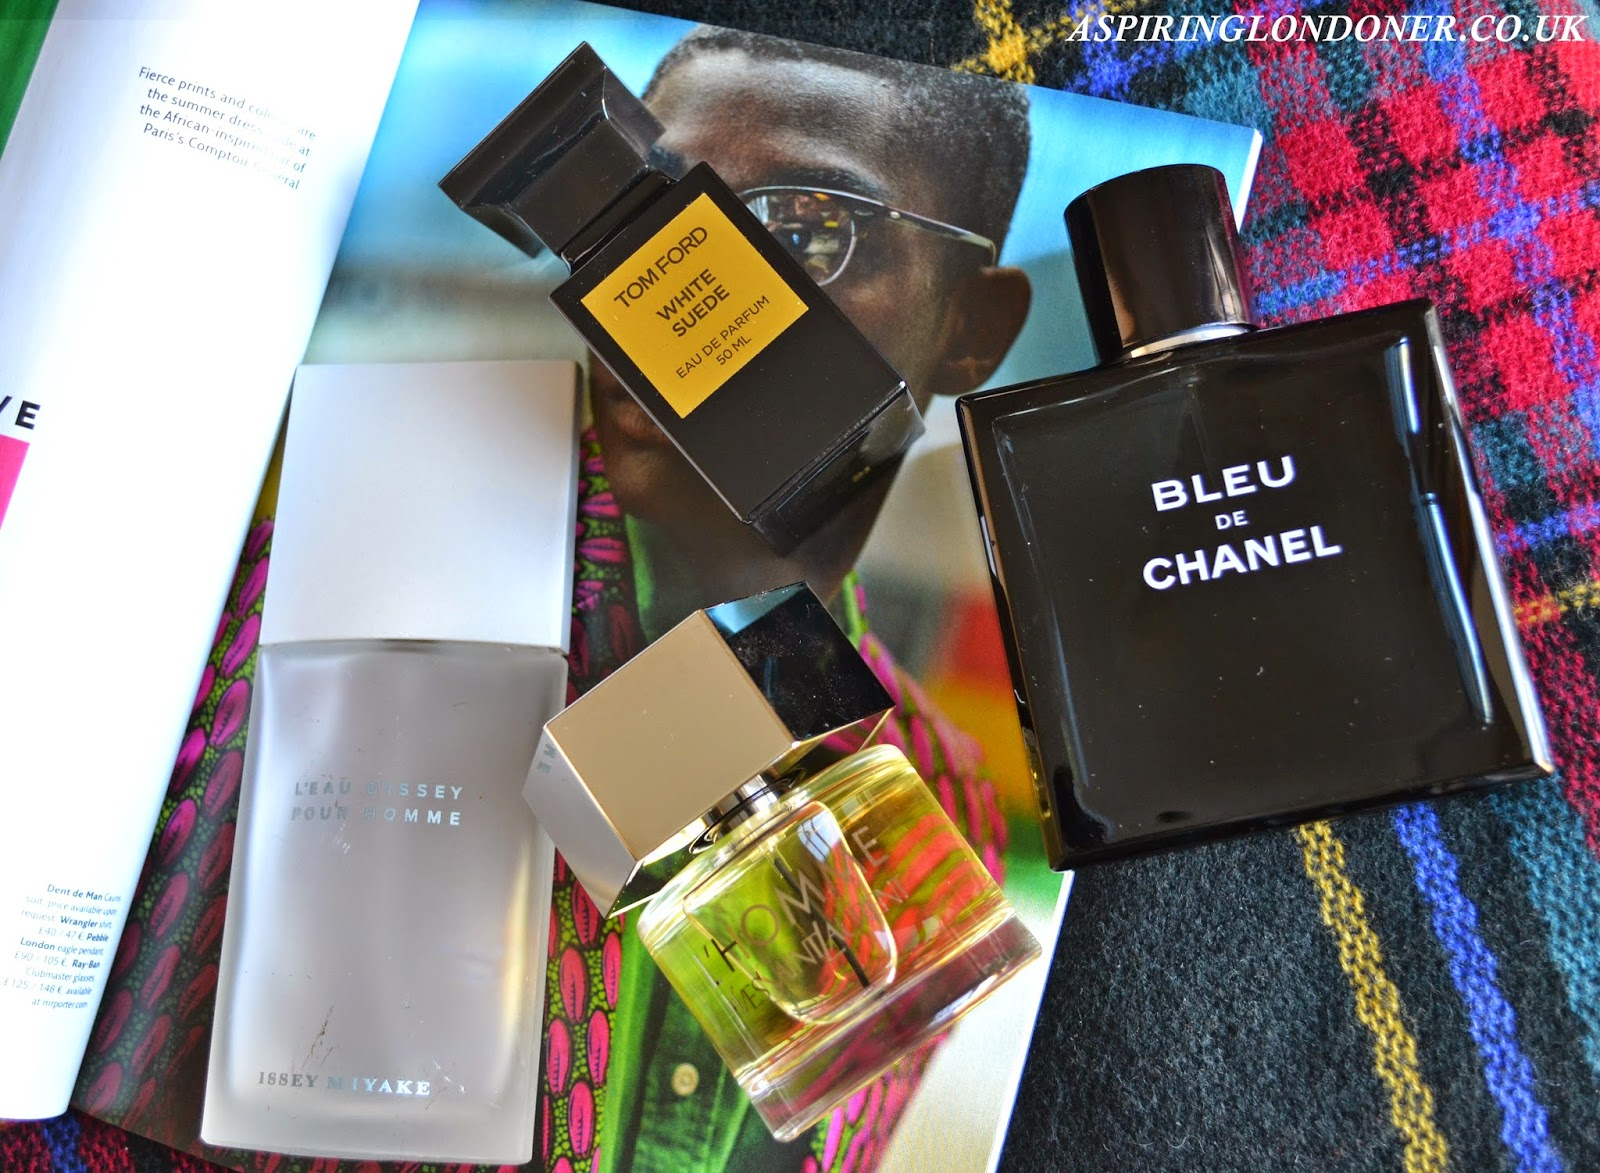 Christmas Gift Guide Perfumes For Him ft Tom Ford, Chanel, YSL, Issey Miyake - Aspiring Londoner